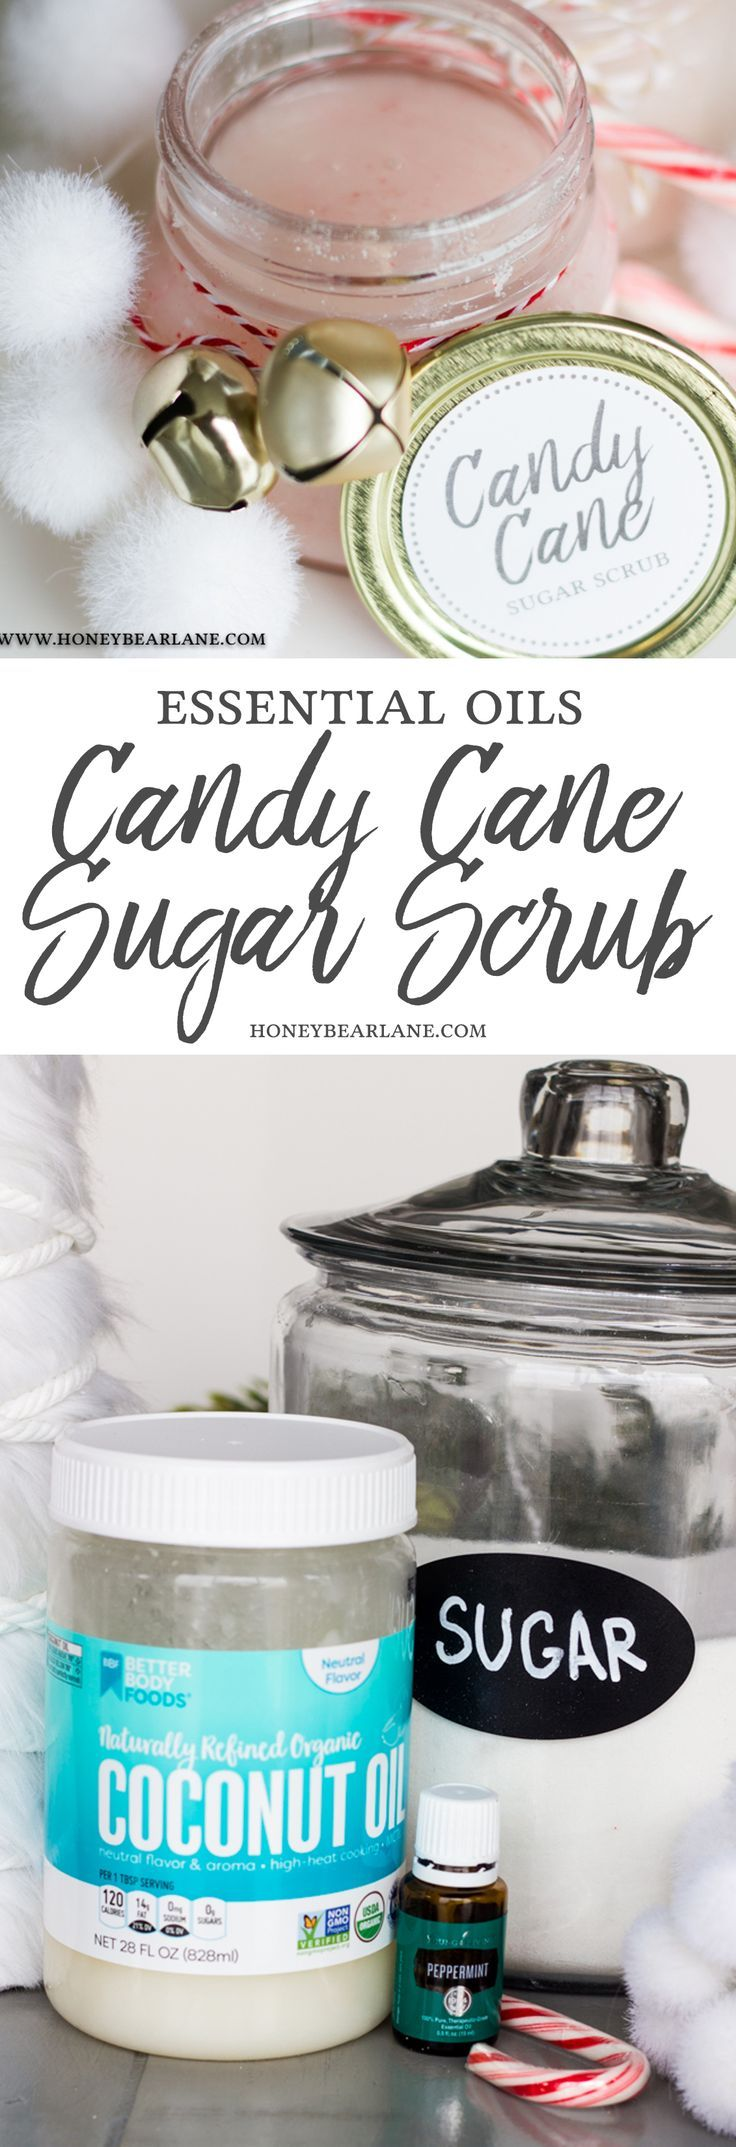 If you love body scrubs, you have to try making them yourself! This candy cane s...